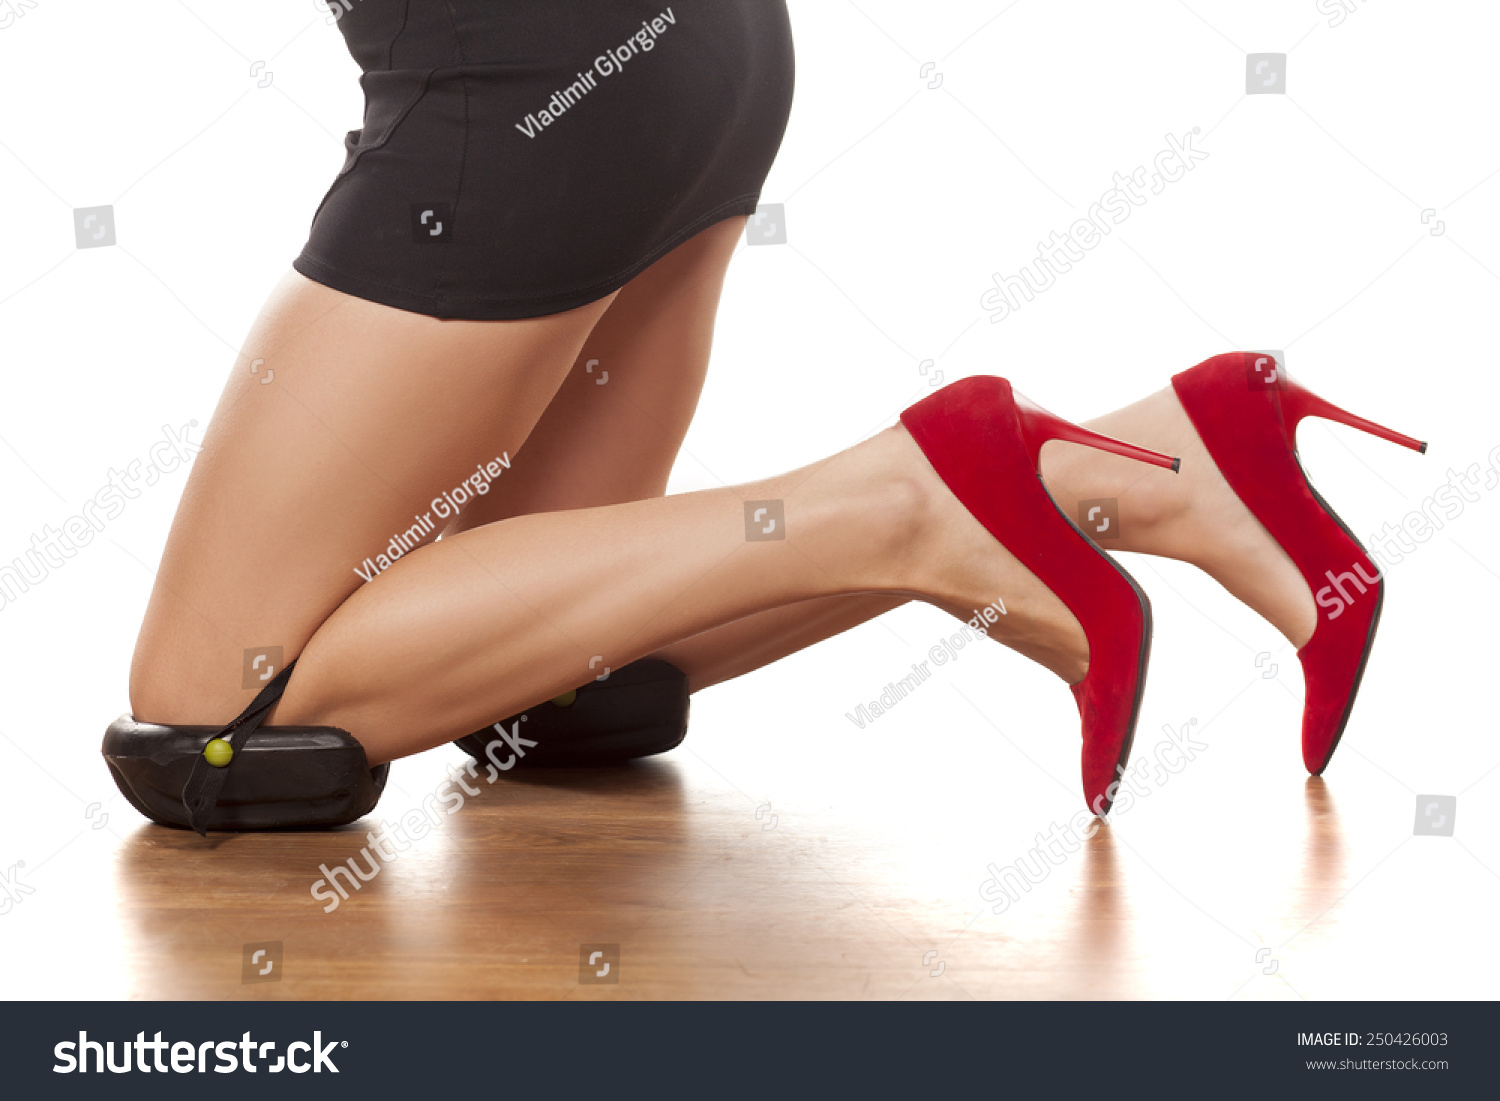 Pretty Female Legs High Heels Kneeling Stock Photo 250426003 ...